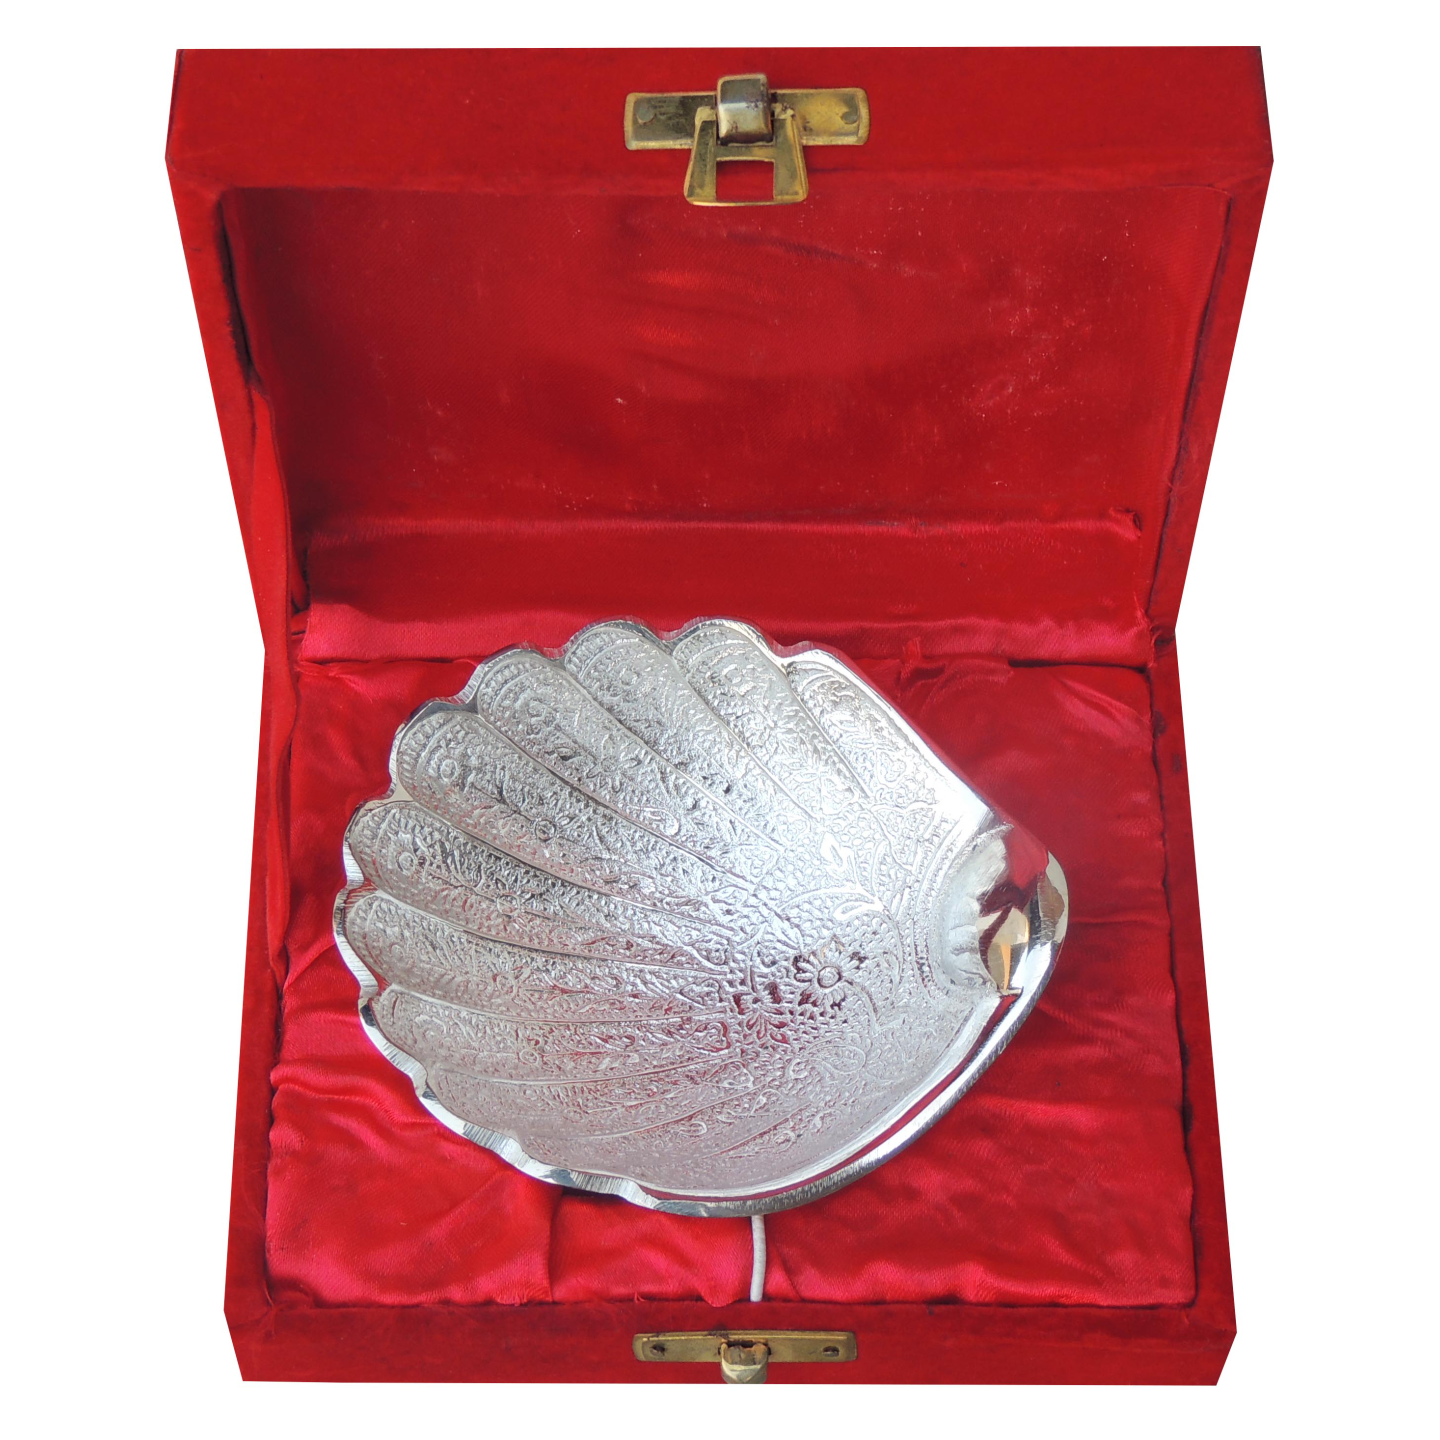 Brass Decorative Bowl With Silver Finish - 4 Inch B046